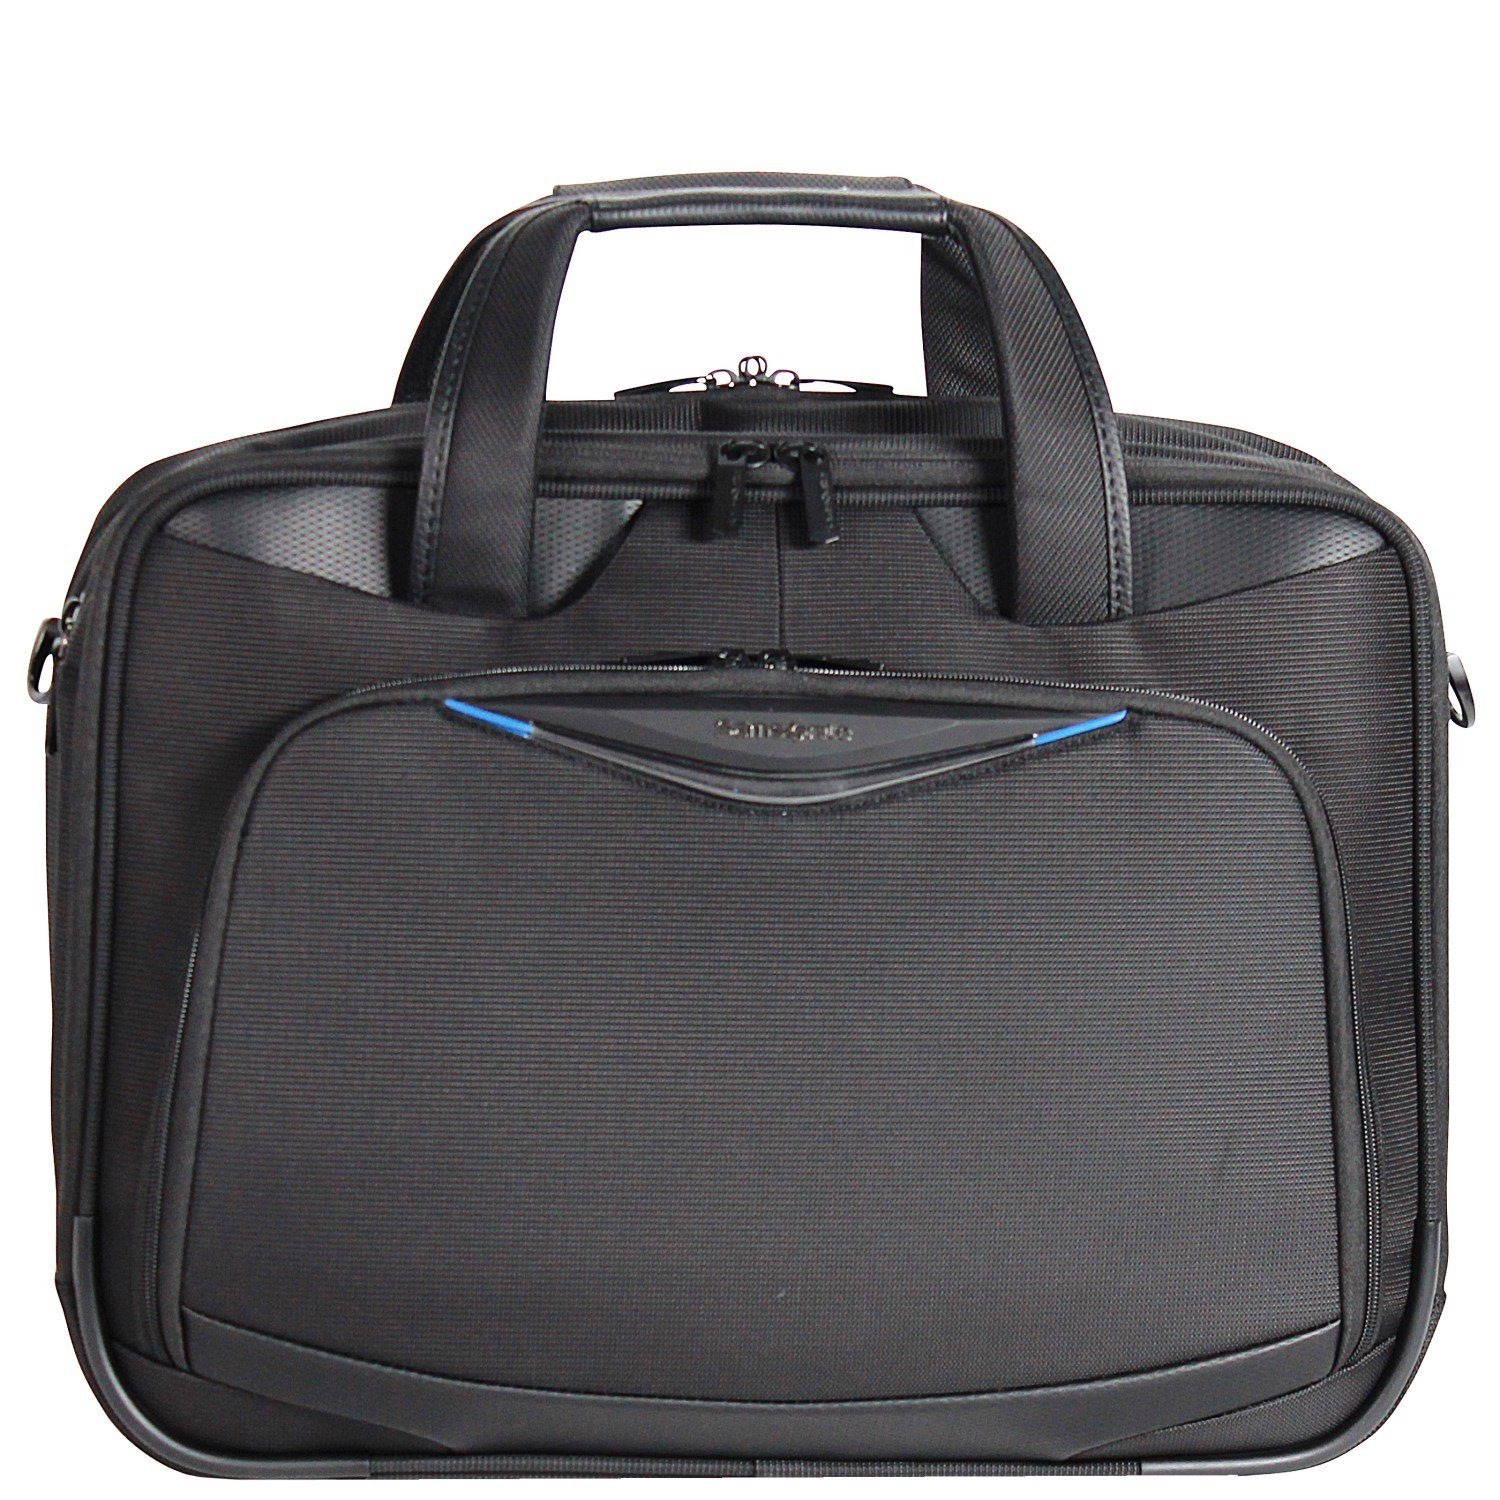 Samsonite Triforce Aktentasche 45 cm Laptopfach